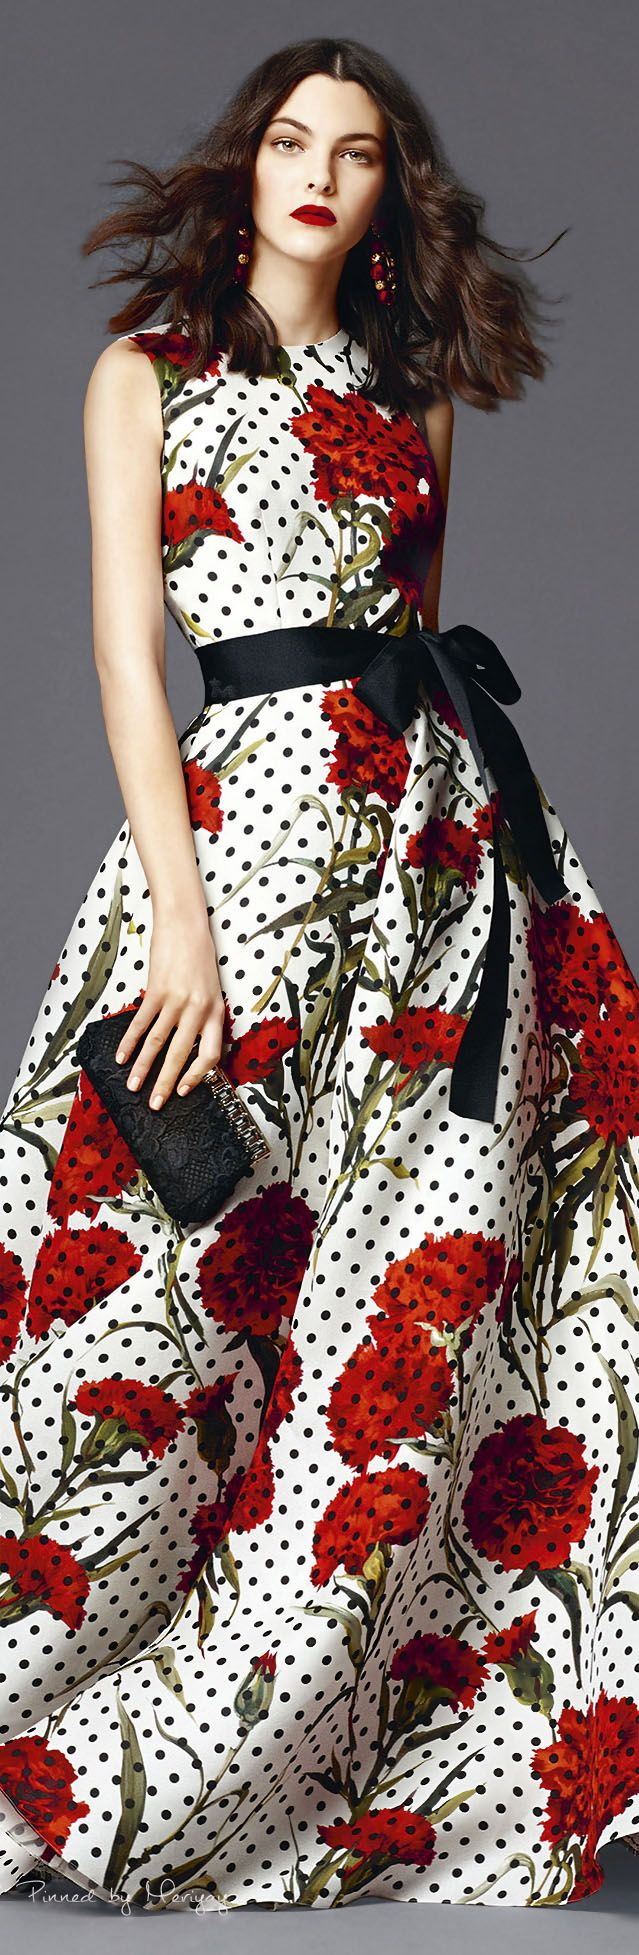 Dolce & Gabbana, 2015 If these were poppies, I'd absolutely love this dress. Still love the colors and dots.